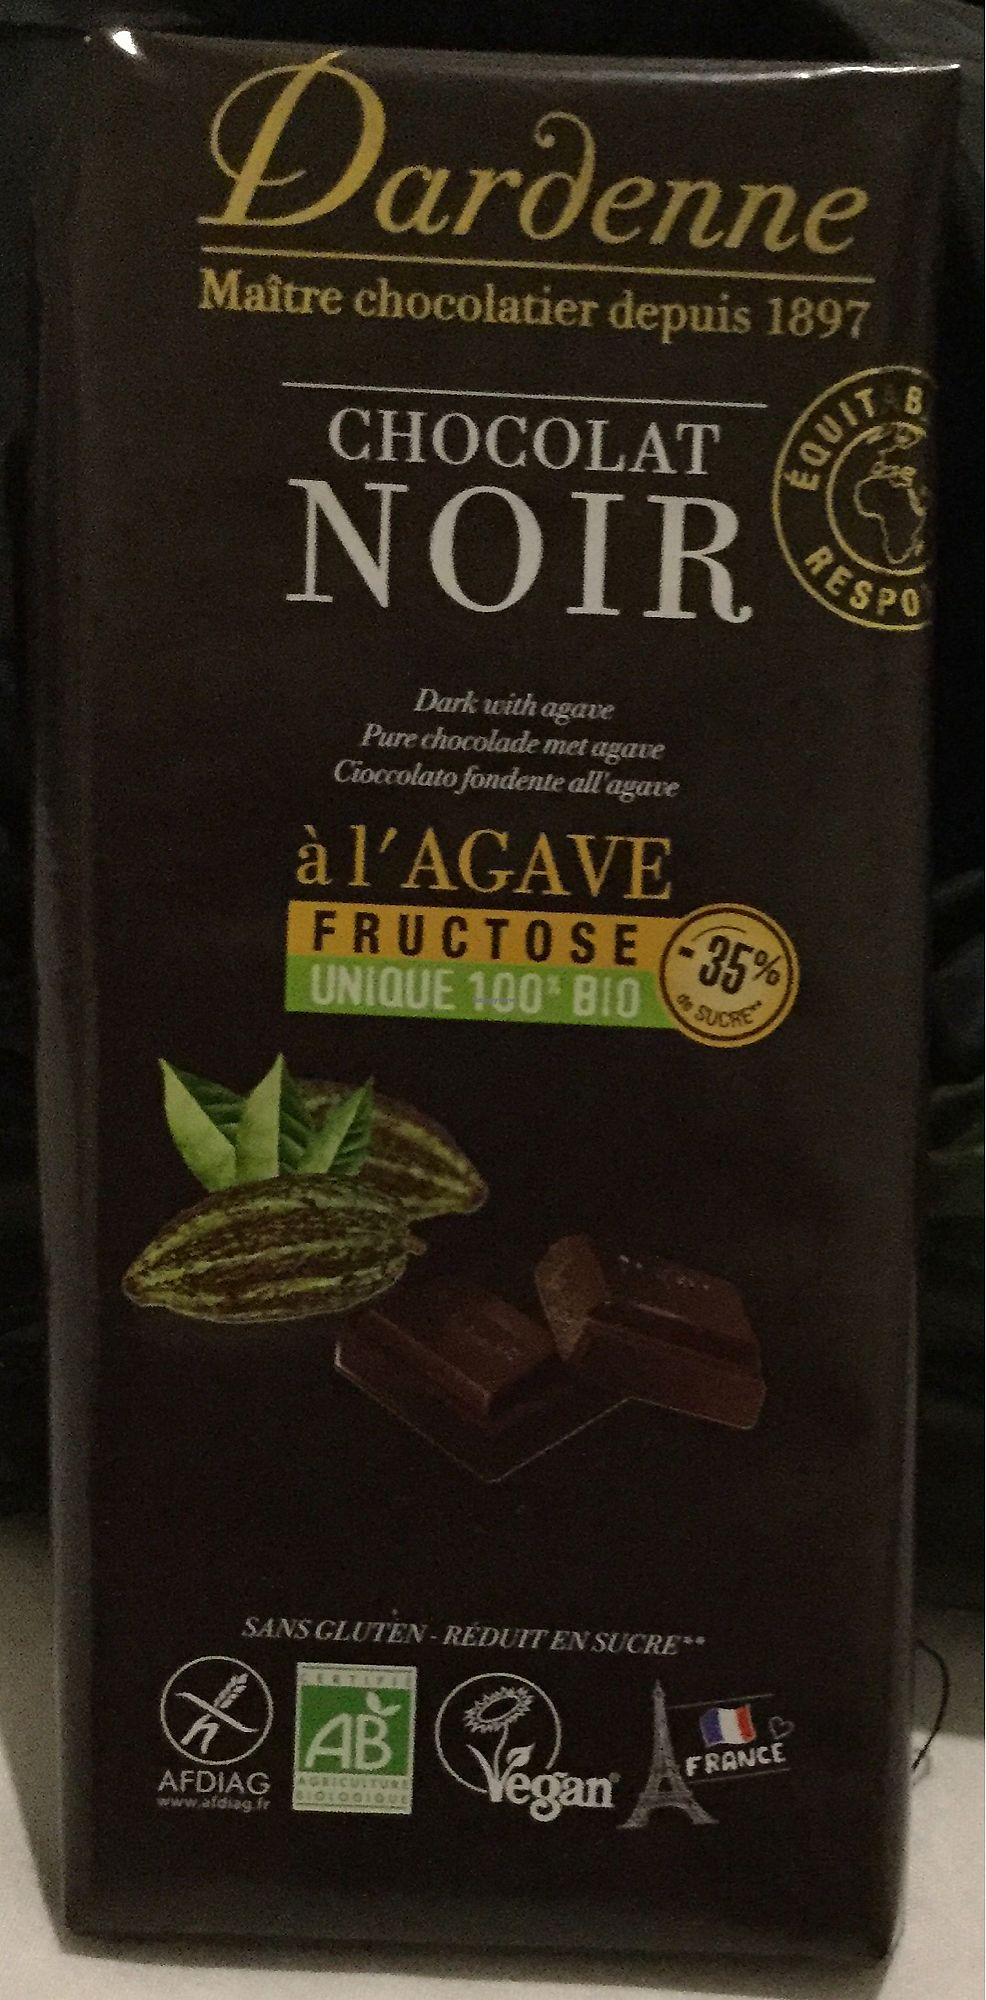 """Photo of La Vie Claire  by <a href=""""/members/profile/Mike%20Munsie"""">Mike Munsie</a> <br/>French vegan chocolate  <br/> September 10, 2017  - <a href='/contact/abuse/image/72038/302825'>Report</a>"""